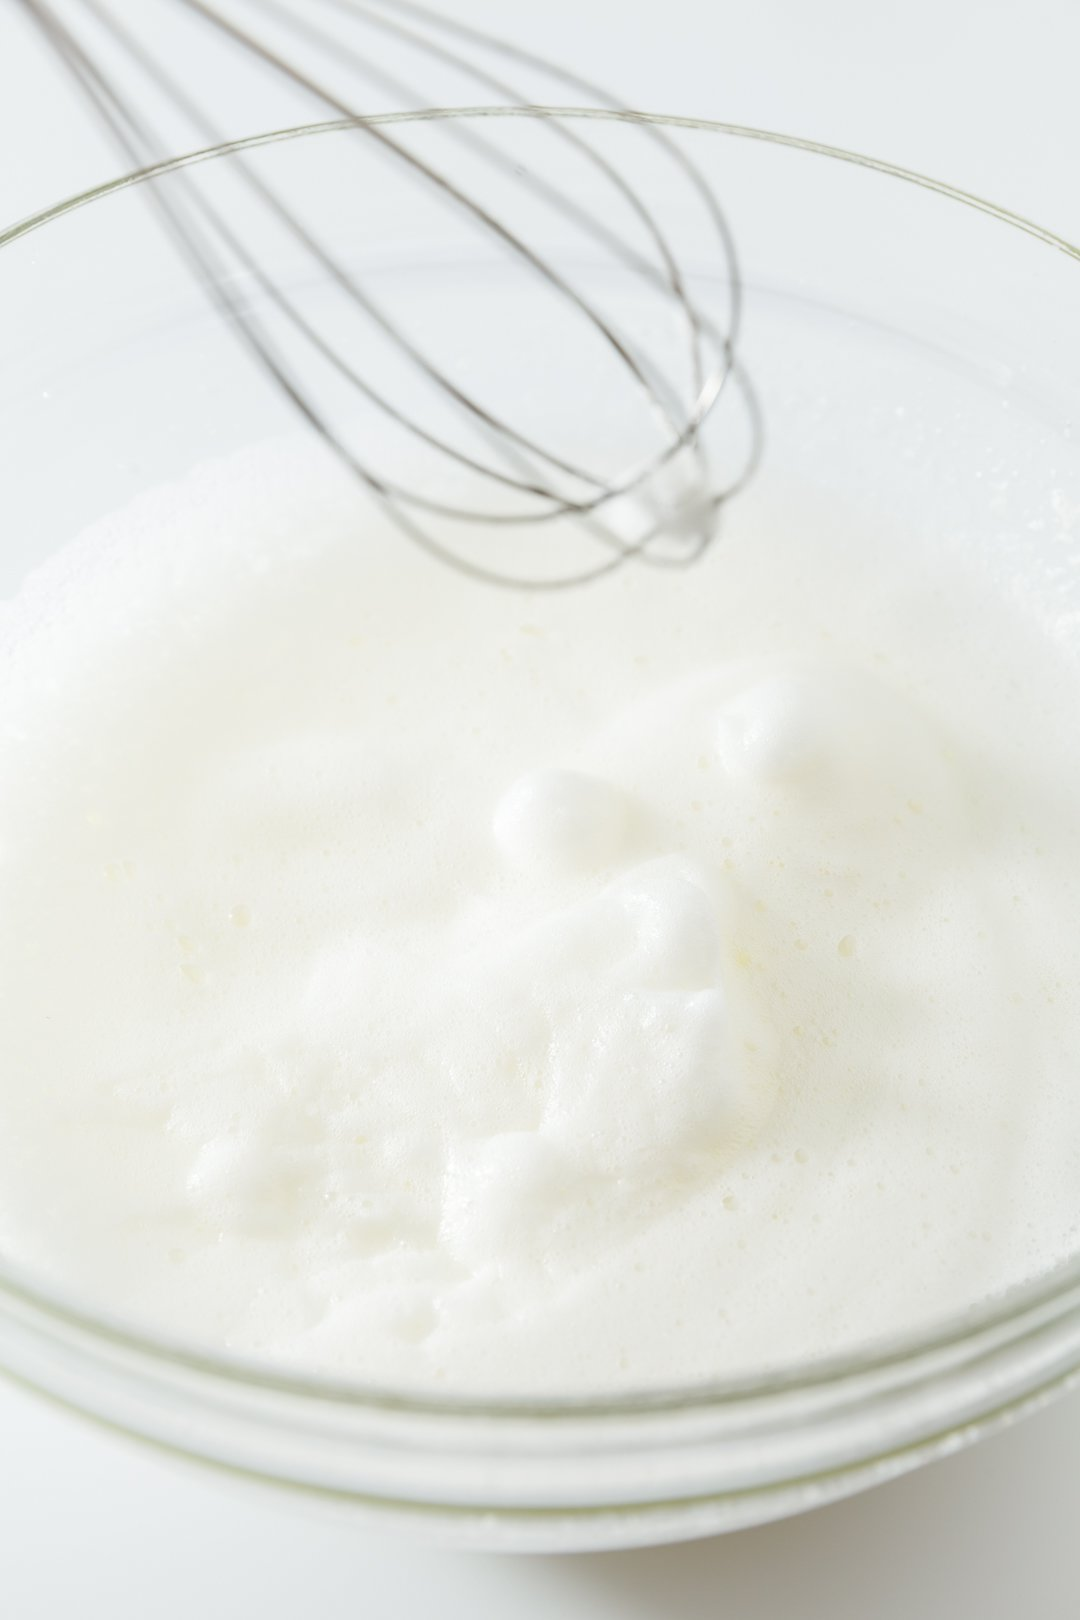 egg whites in soft peak phase